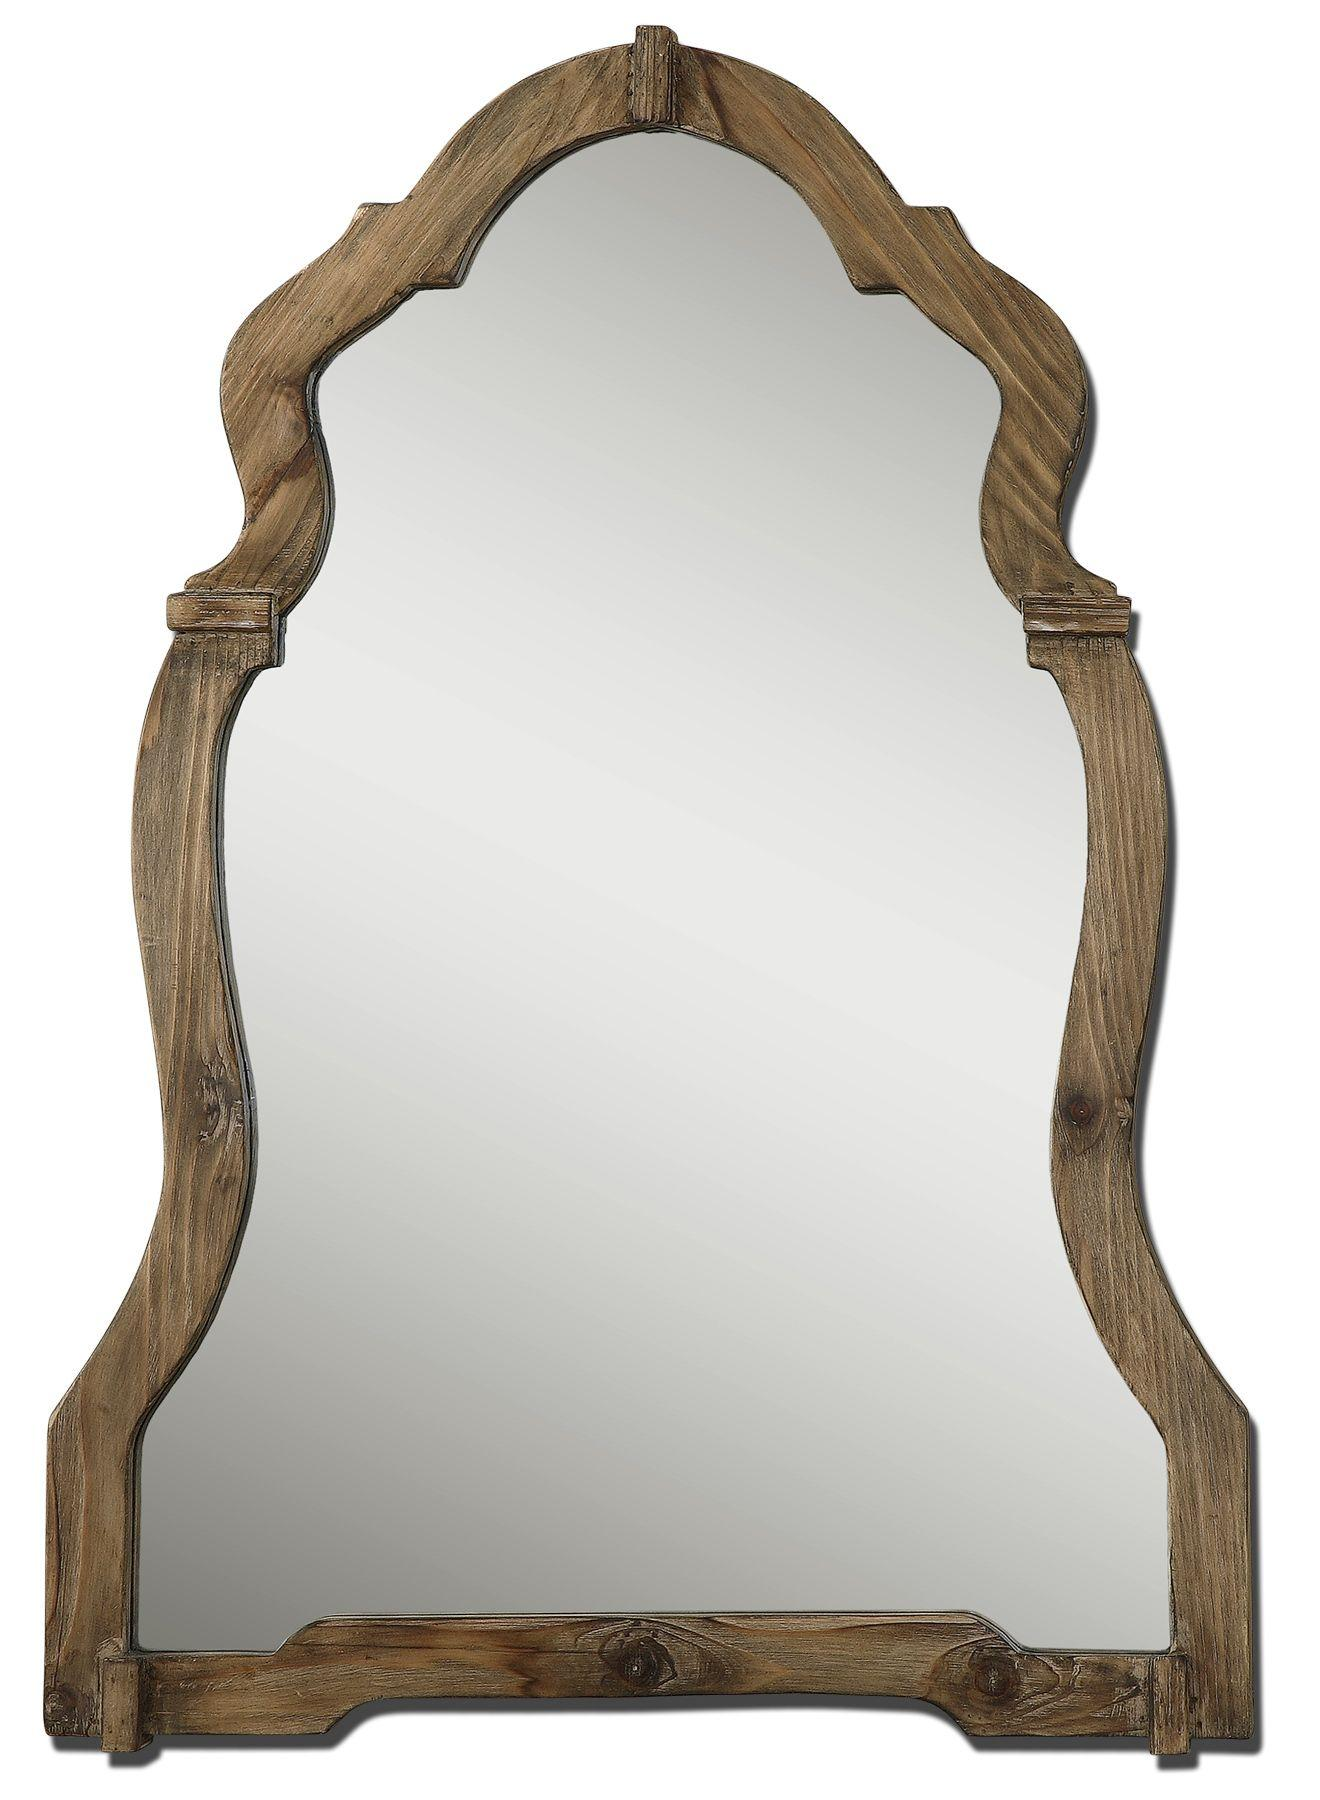 Uttermost Mirrors Agustin Mirror - Item Number: 07632